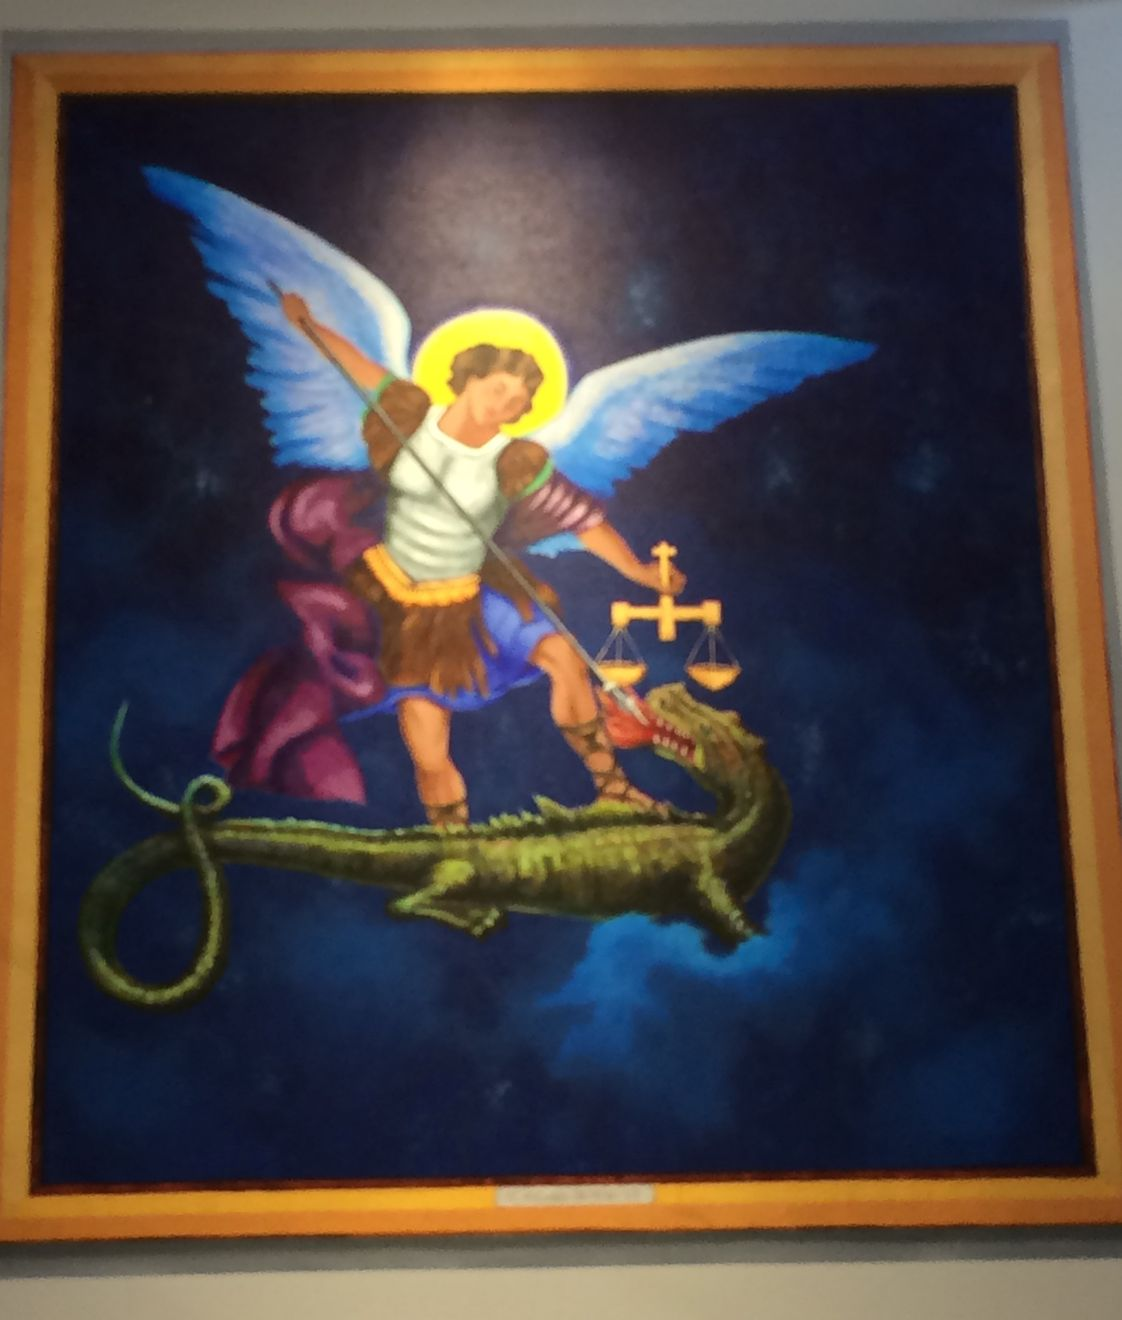 St Michaels Catholic School Photo #1 - The mission of St. Michael's Catholic School is to know as Jesus knows, to love as Jesus loves and to serve as Jesus serves.